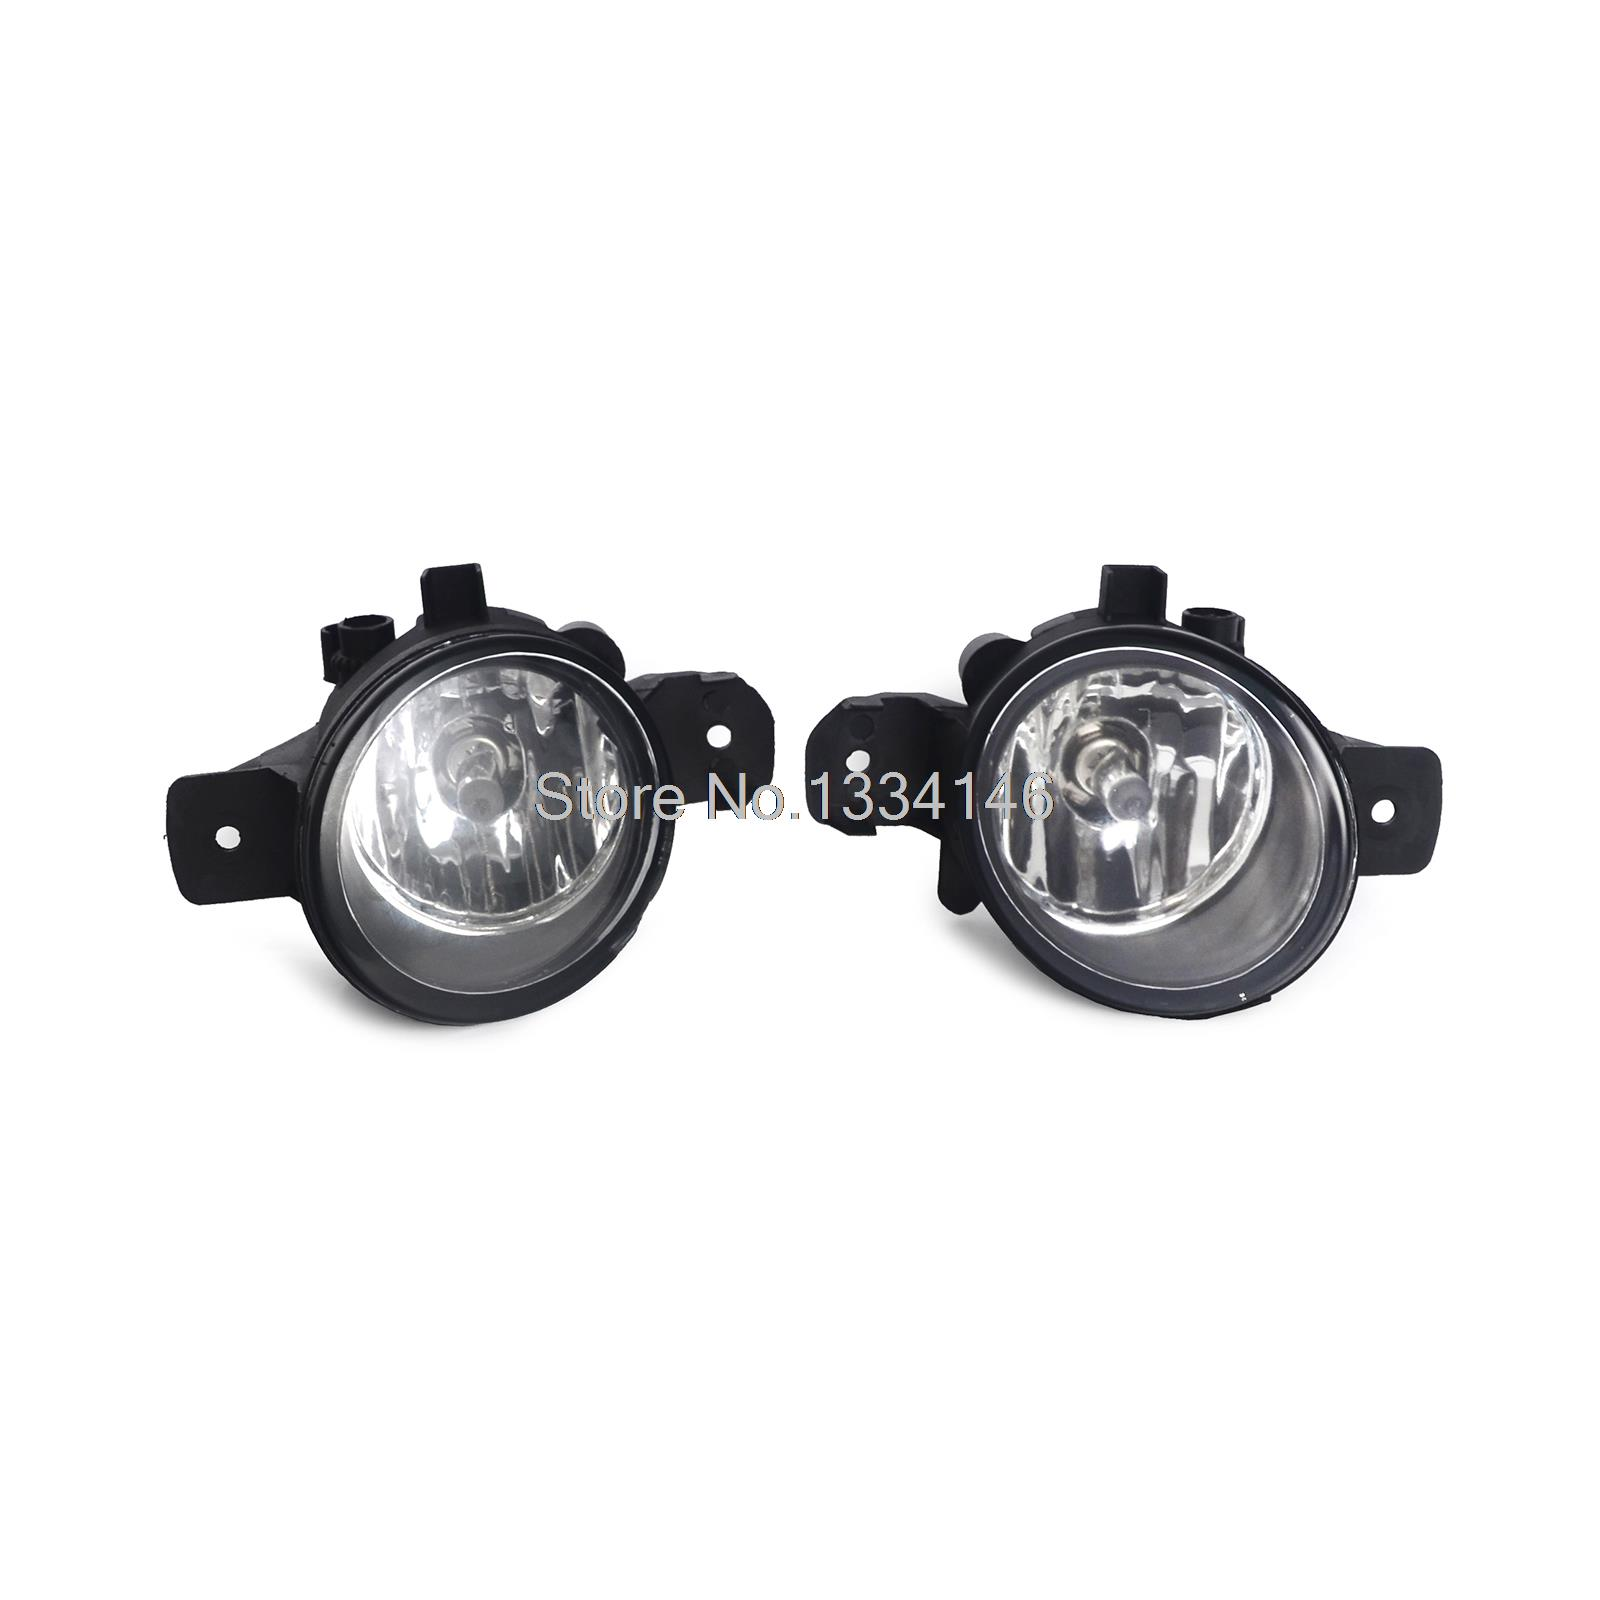 ФОТО Replacement NI2593117 Fog Lights Pair RH LH For Nissan Rogue 2008-2010 Euro